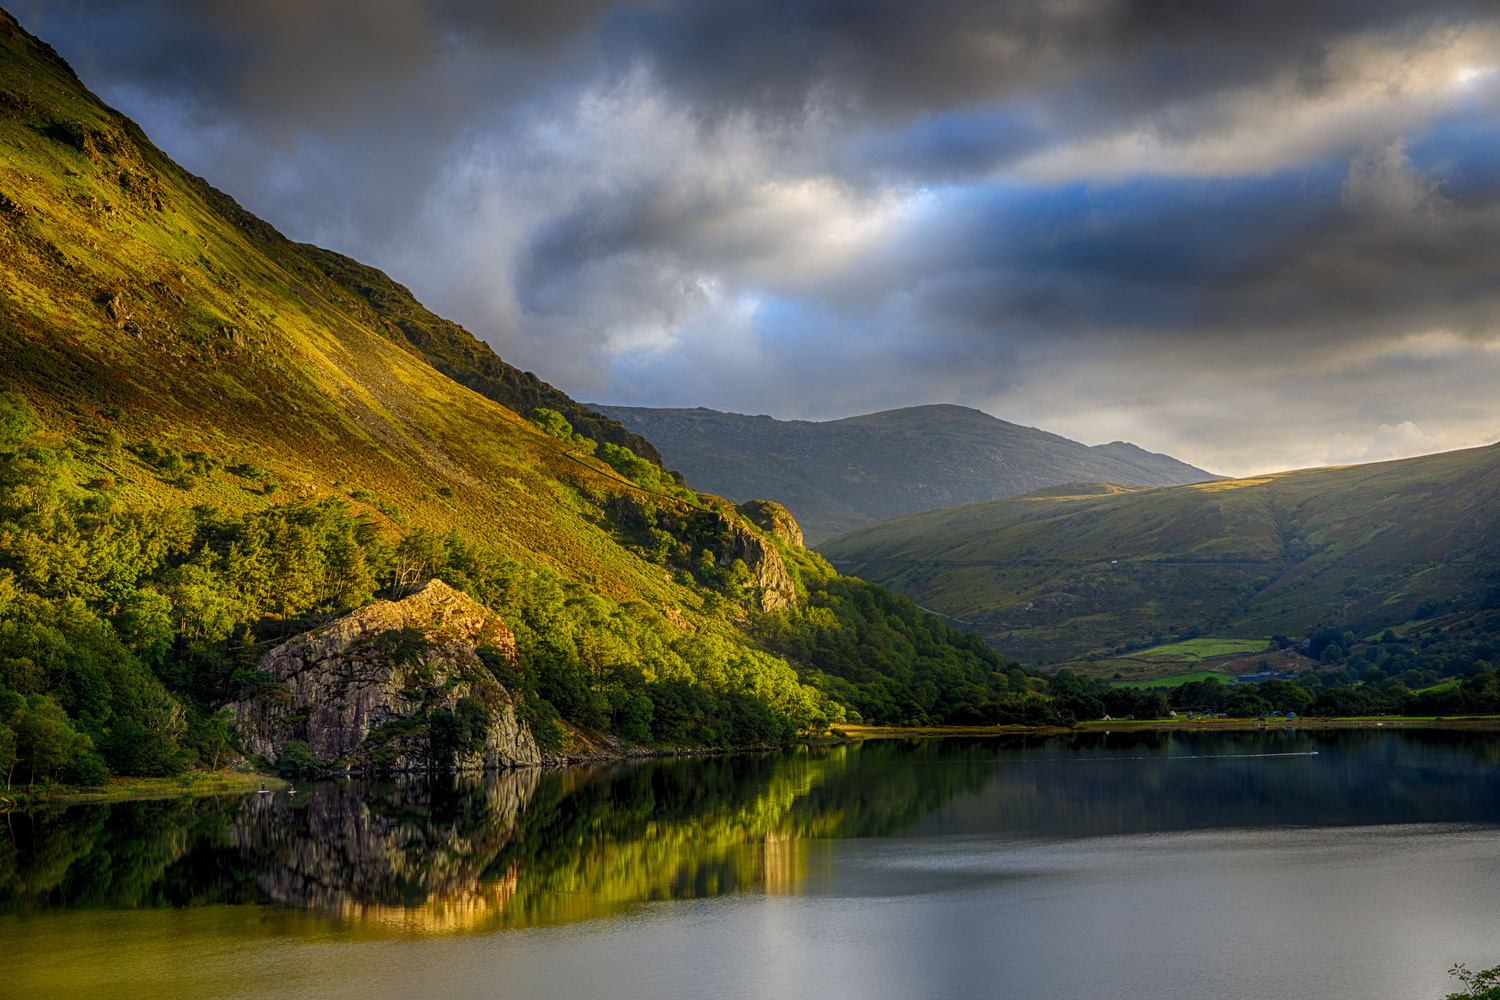 The foot of the mountain Gallt Y Wenallt running into the lake Llyn Gwynant by Will Dale